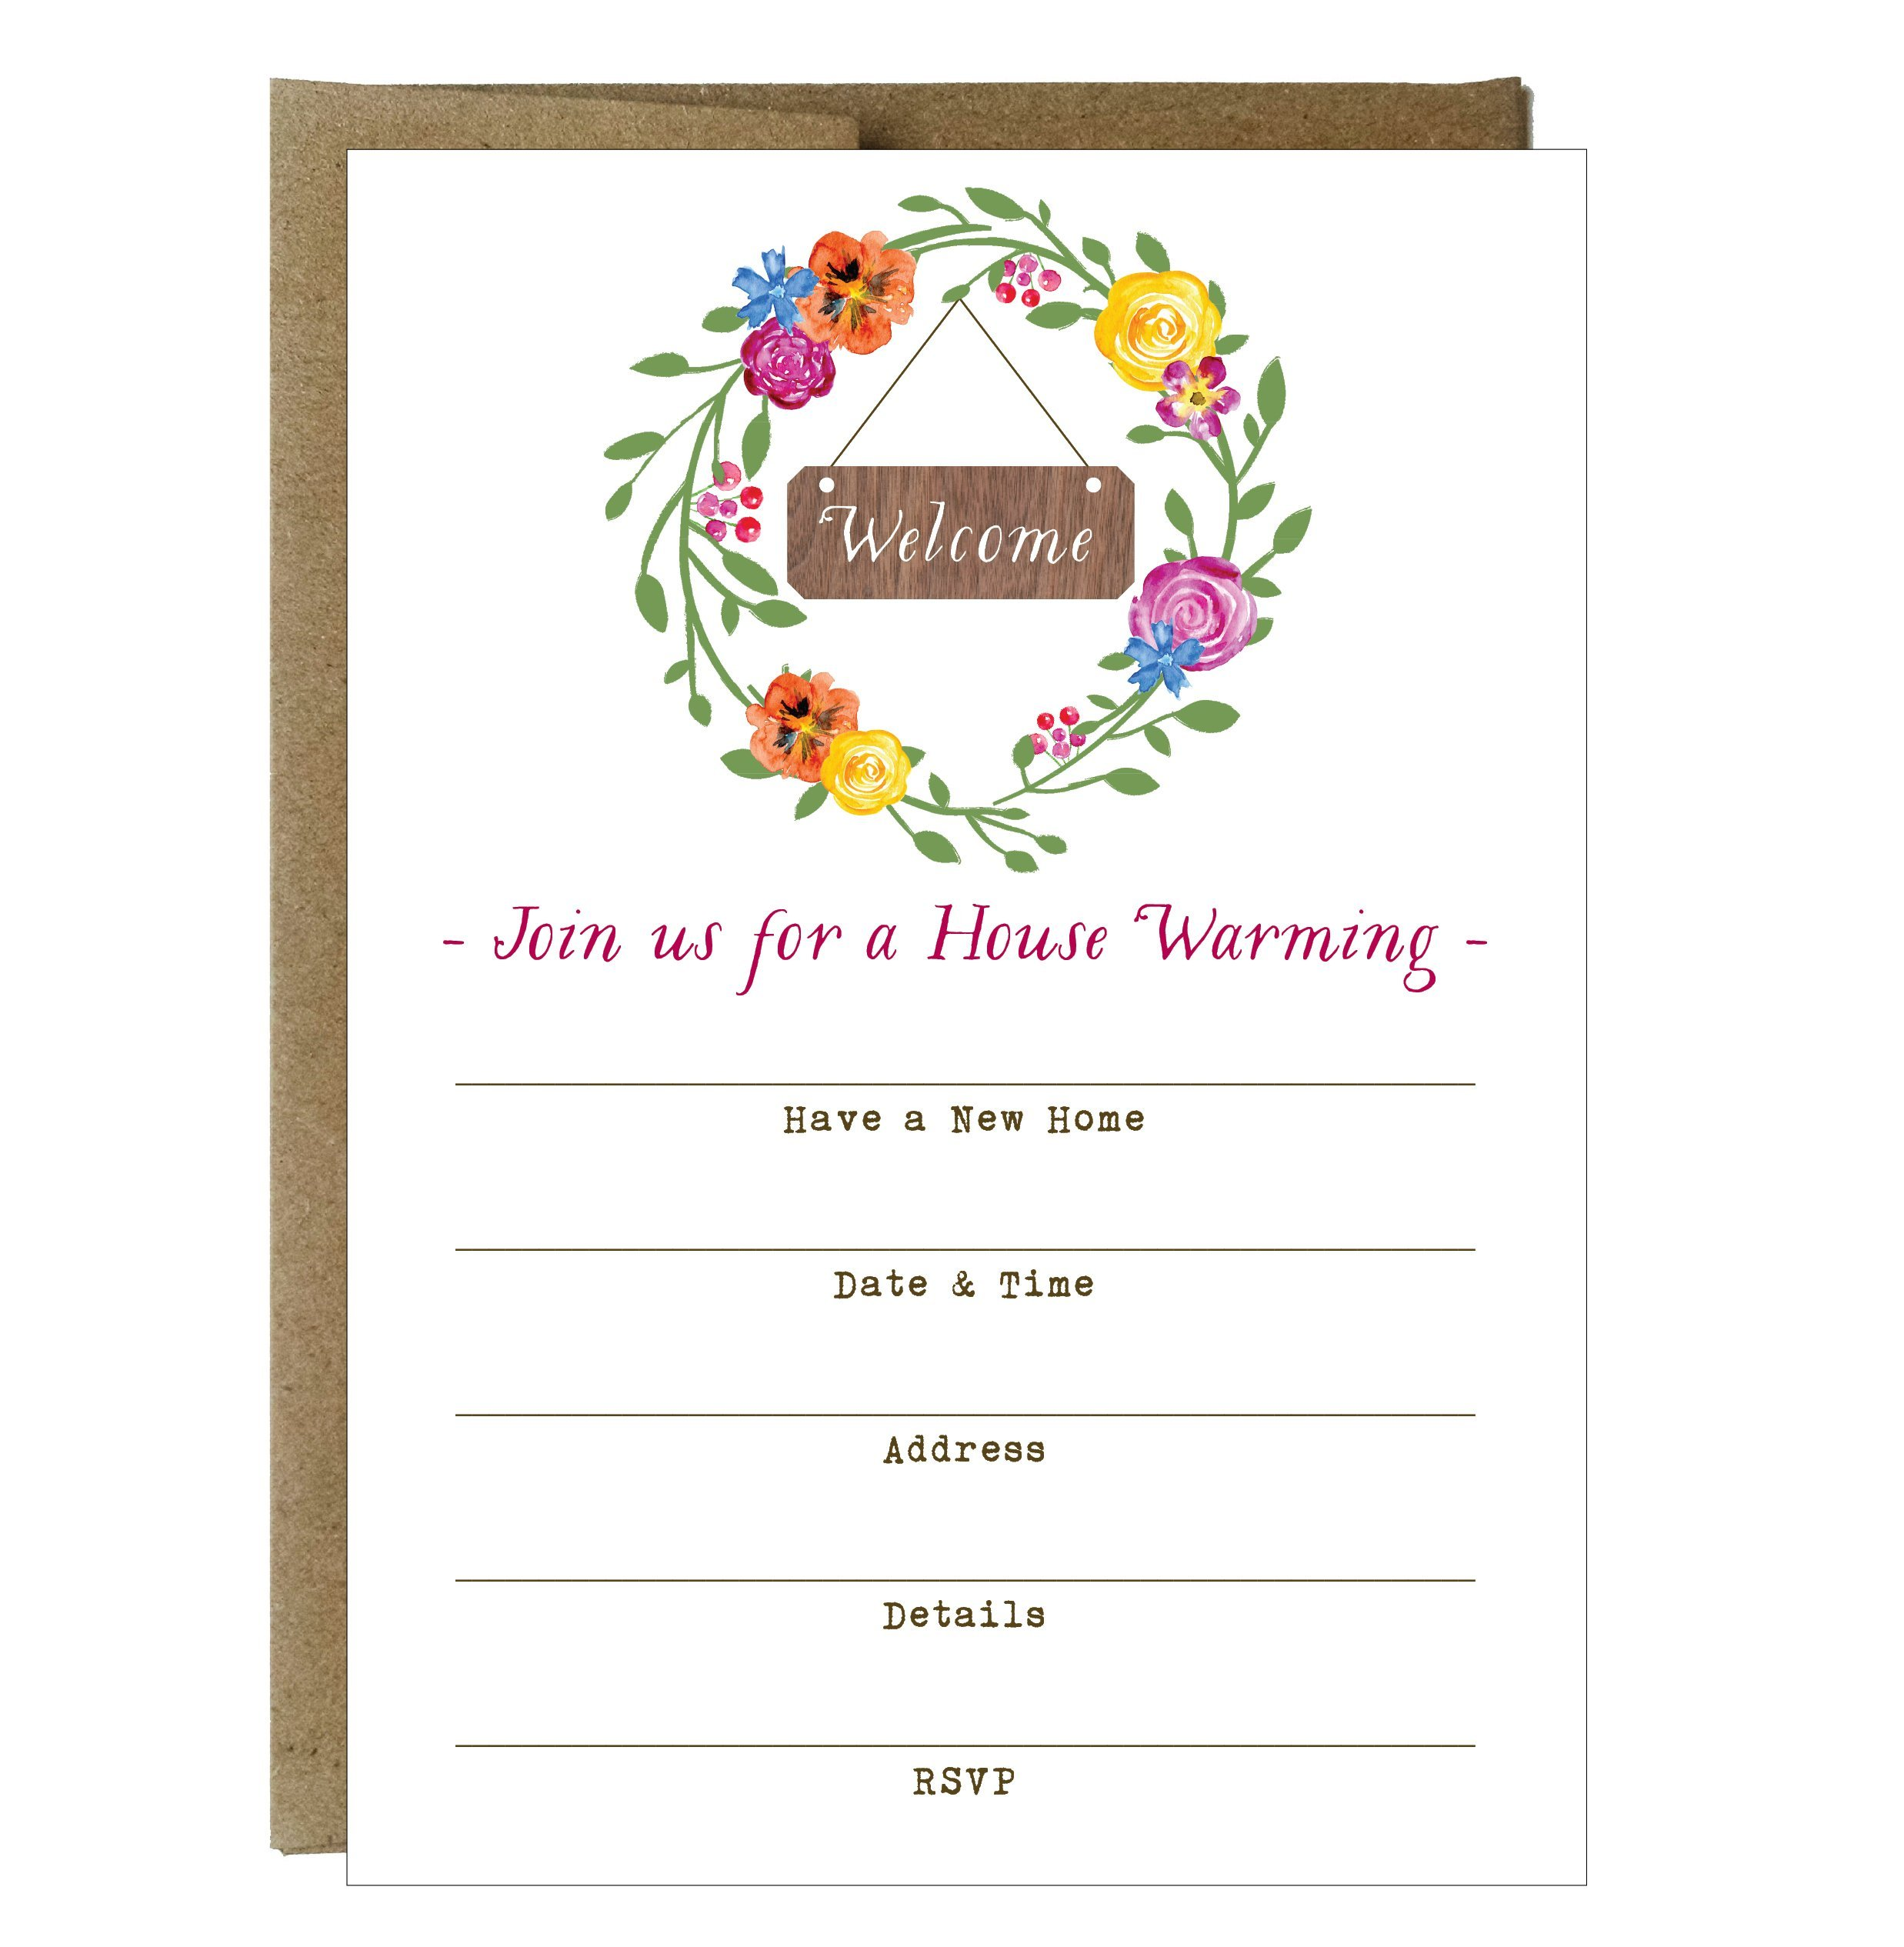 Watercolor Design Wreath Happy House Warming Fill-in Invitations - 10 pack